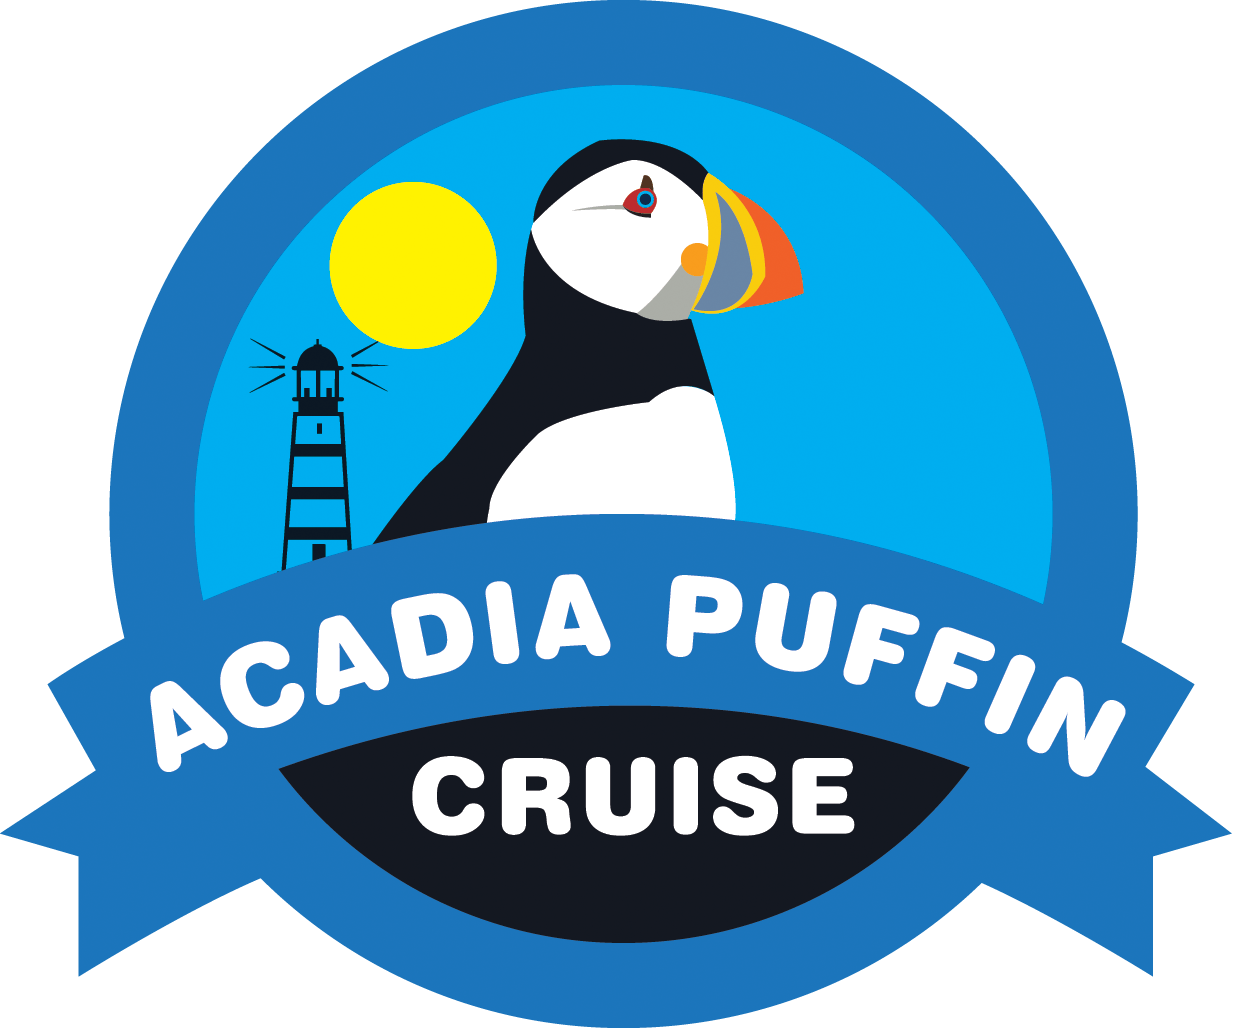 Acadia Puffin Cruise